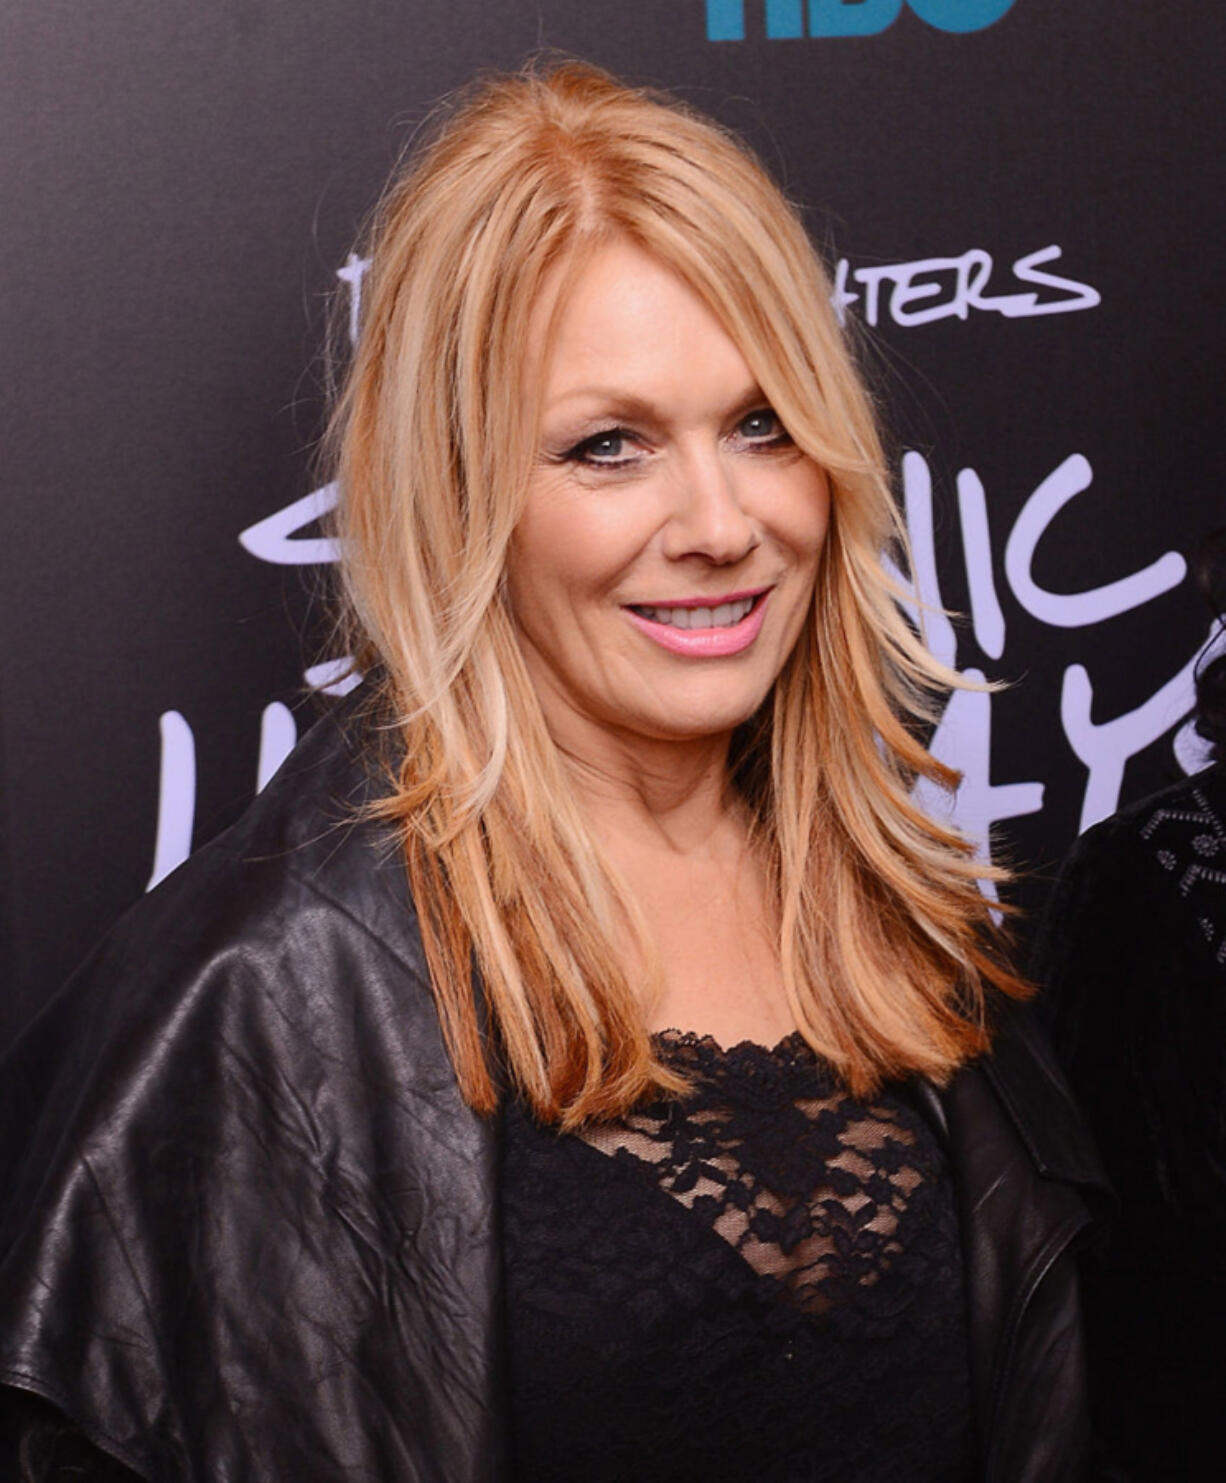 """Musician Nancy Wilson of Heart attends The """"Foo Fighters:  Sonic Highways"""" New York Premiere at Ed Sullivan Theater on October 14, 2014 in New York City."""